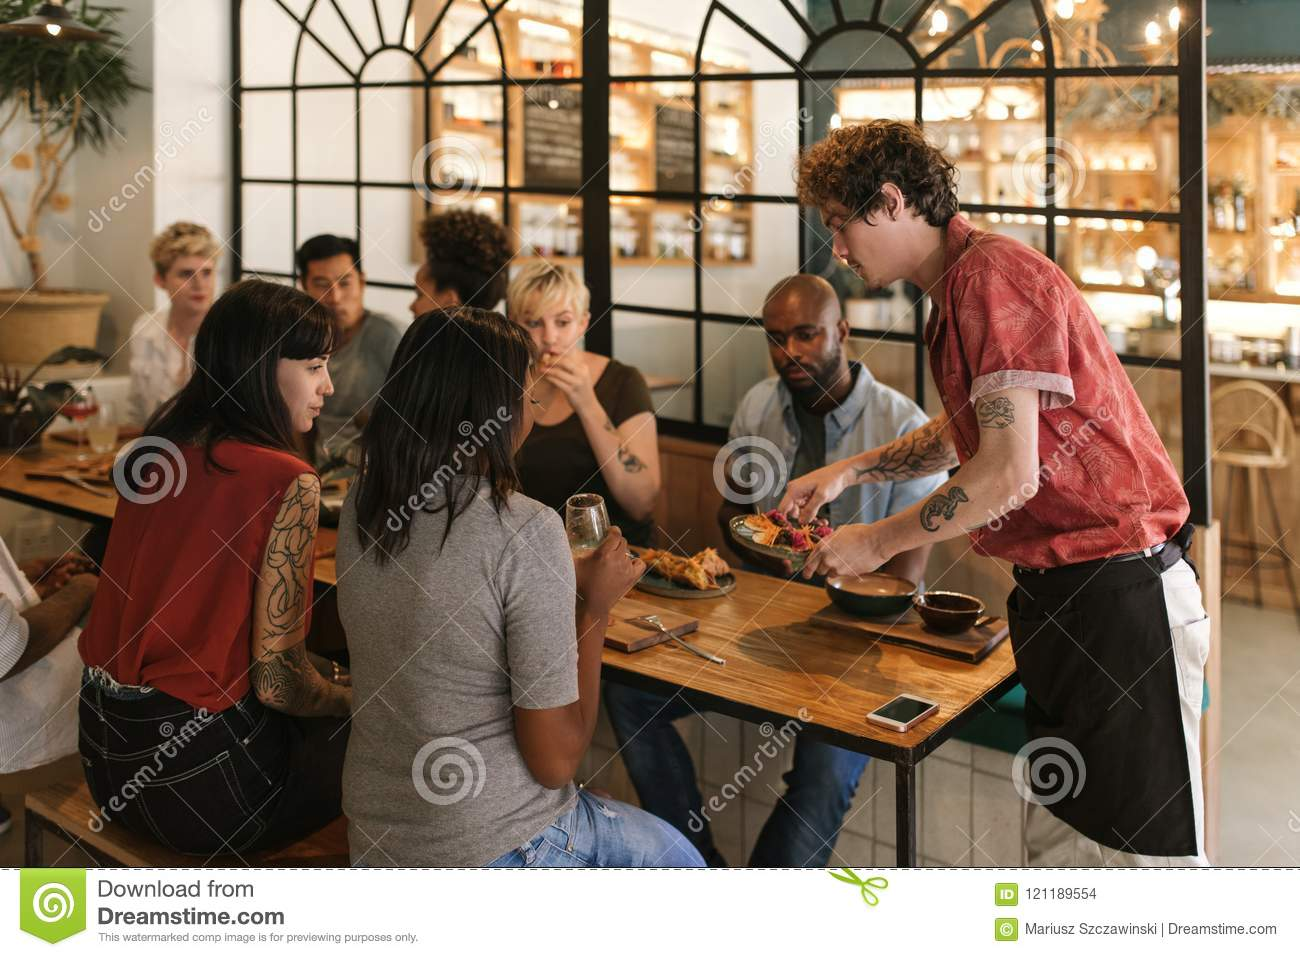 Waiter serving freshly made food to smiling bistro customers